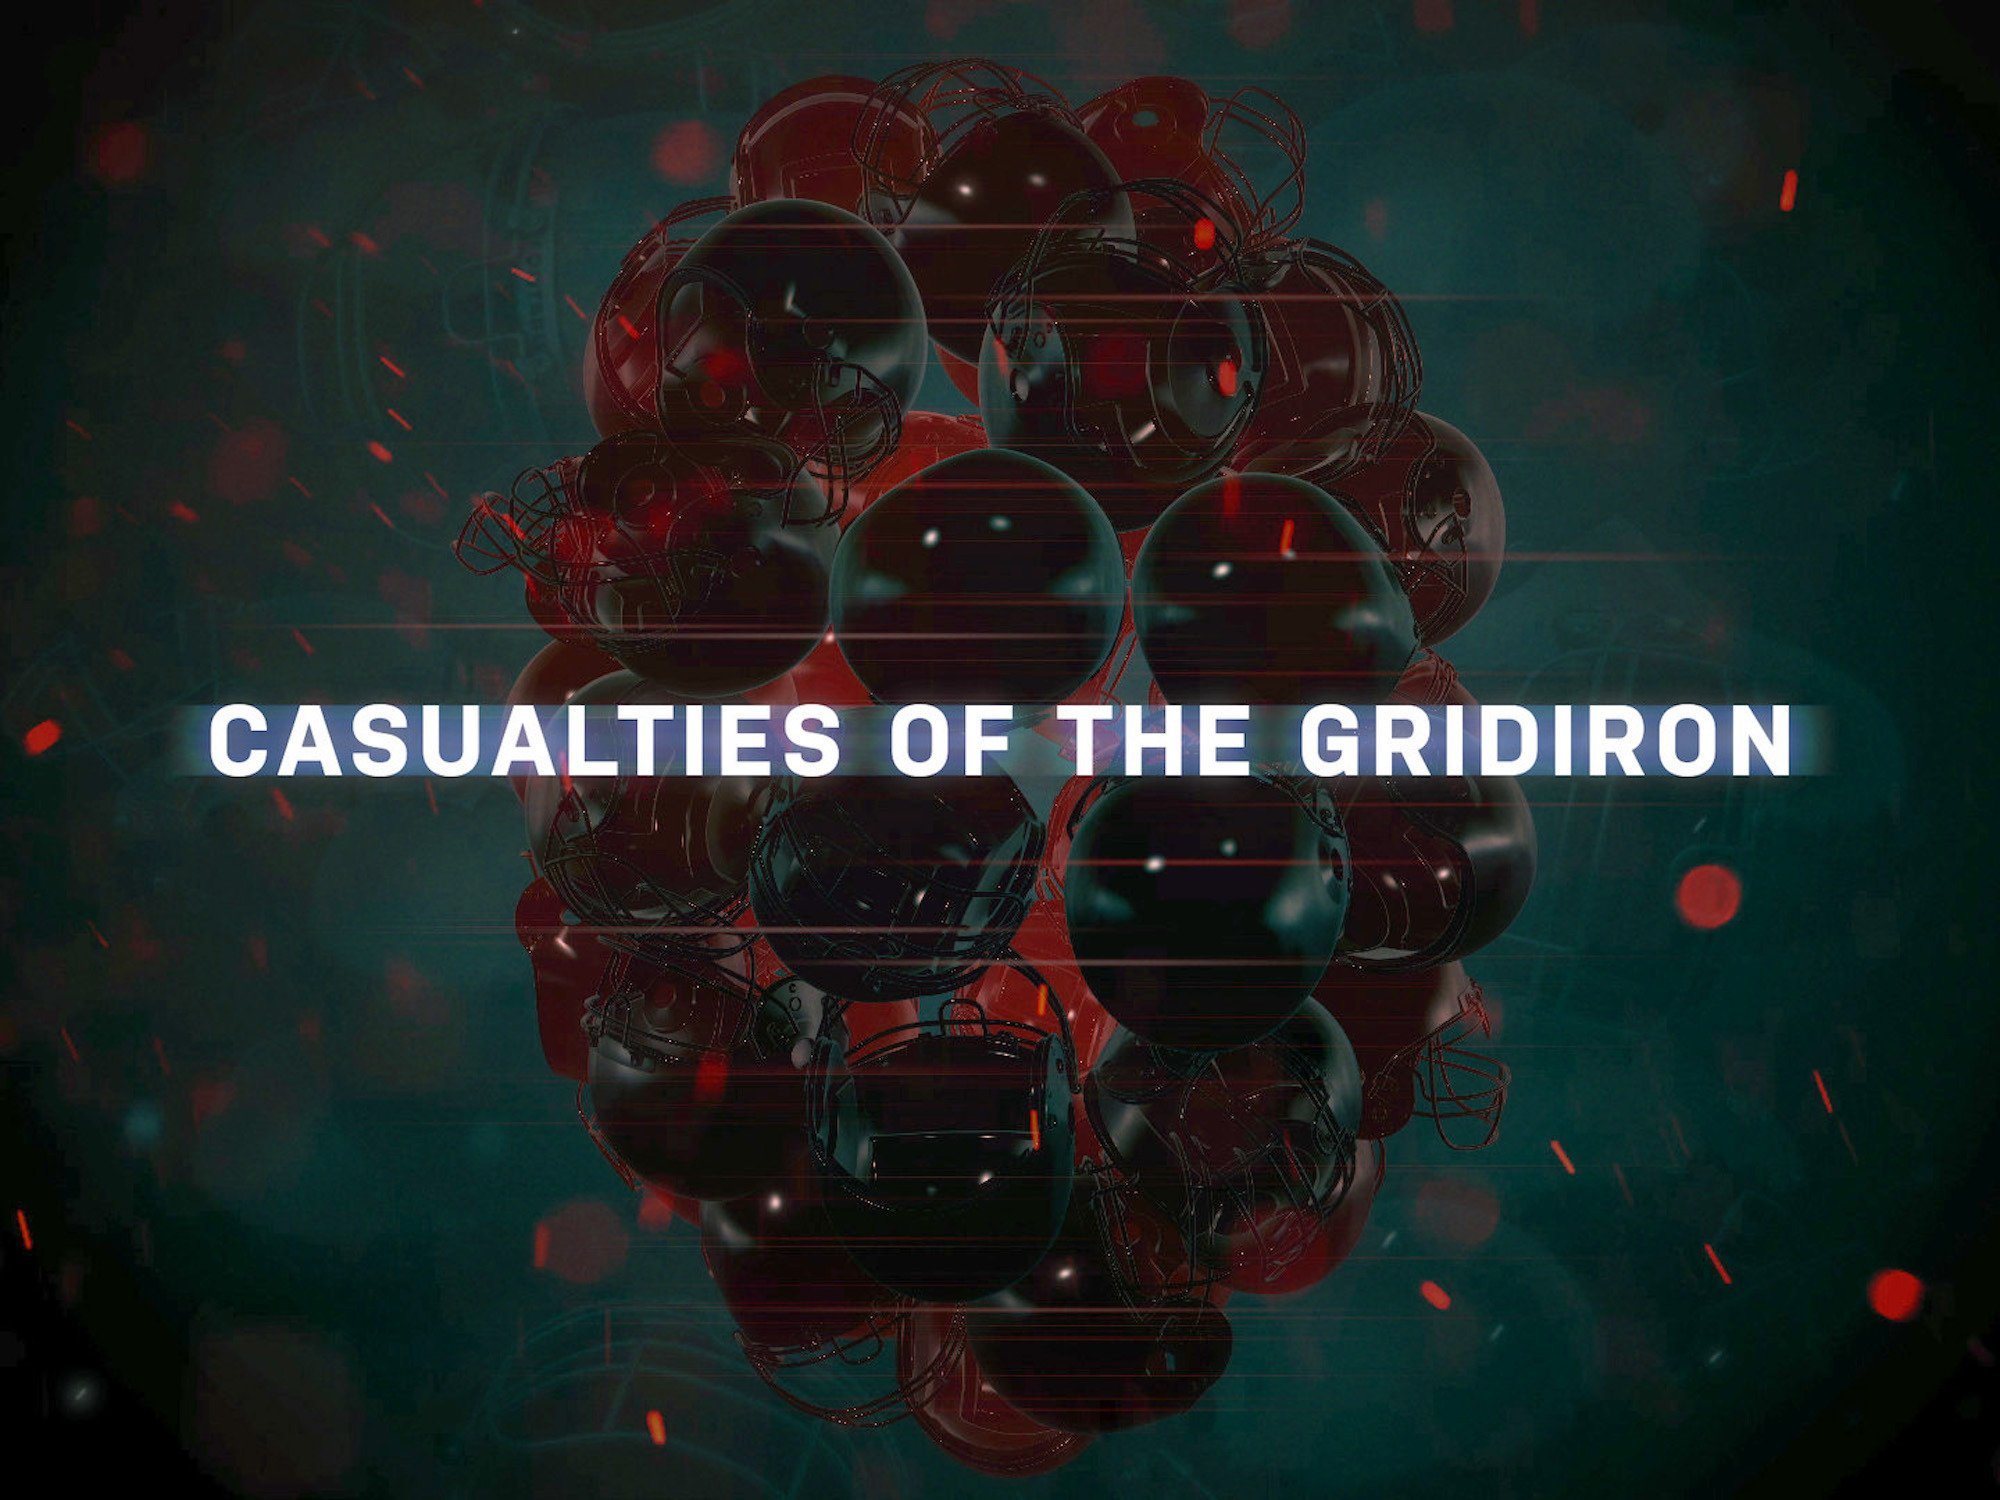 Clip: Casualties of the Gridiron - Season 1